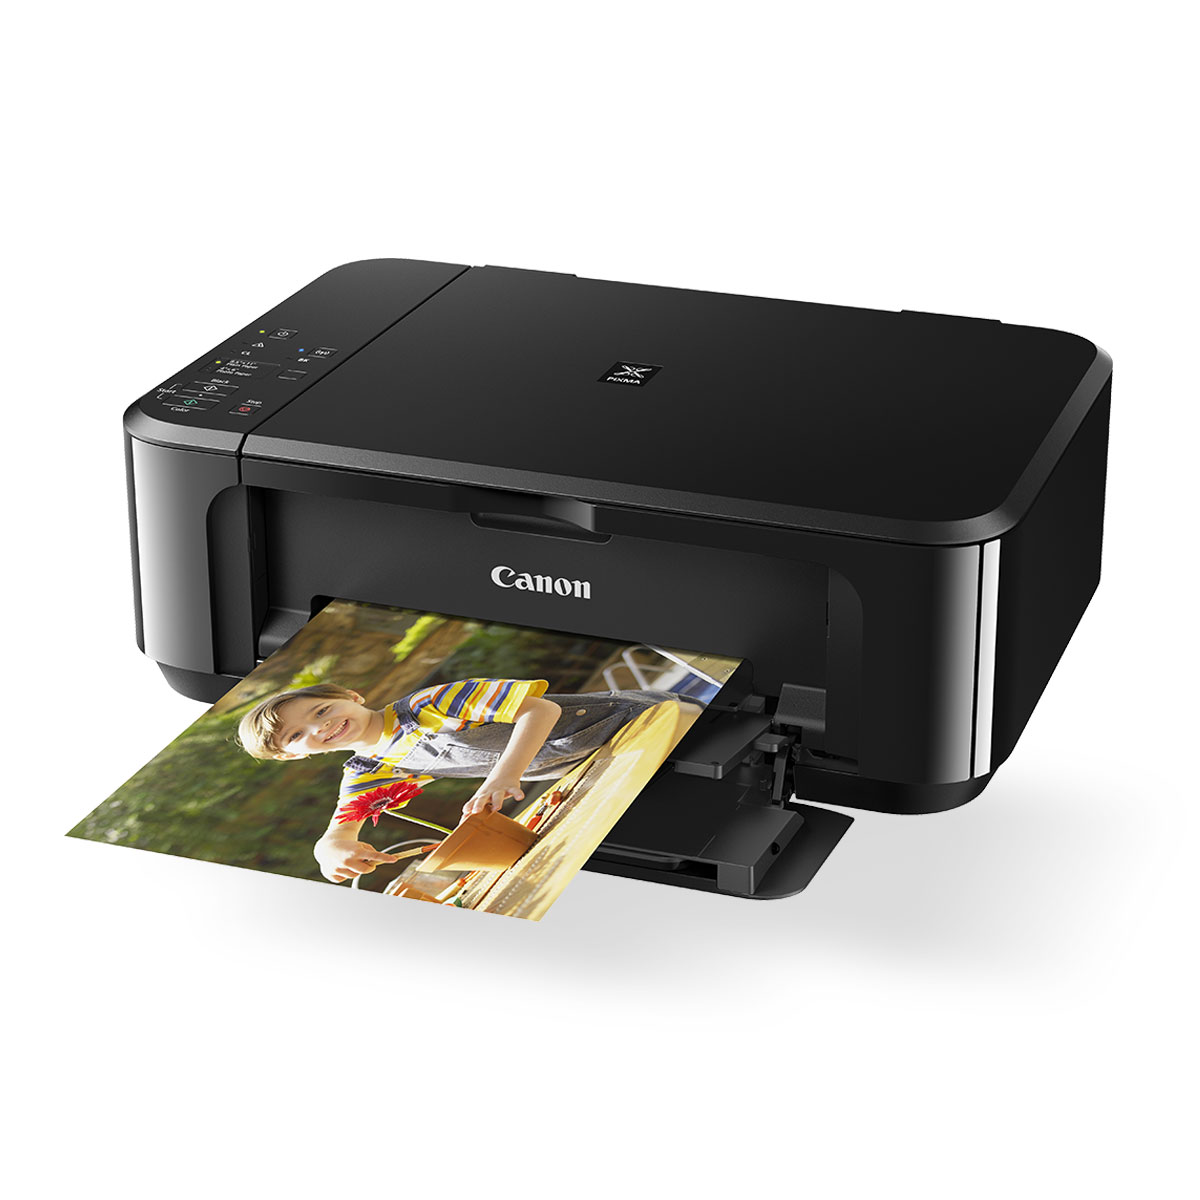 Canon PIXMA MG3660 black front angled open with print out